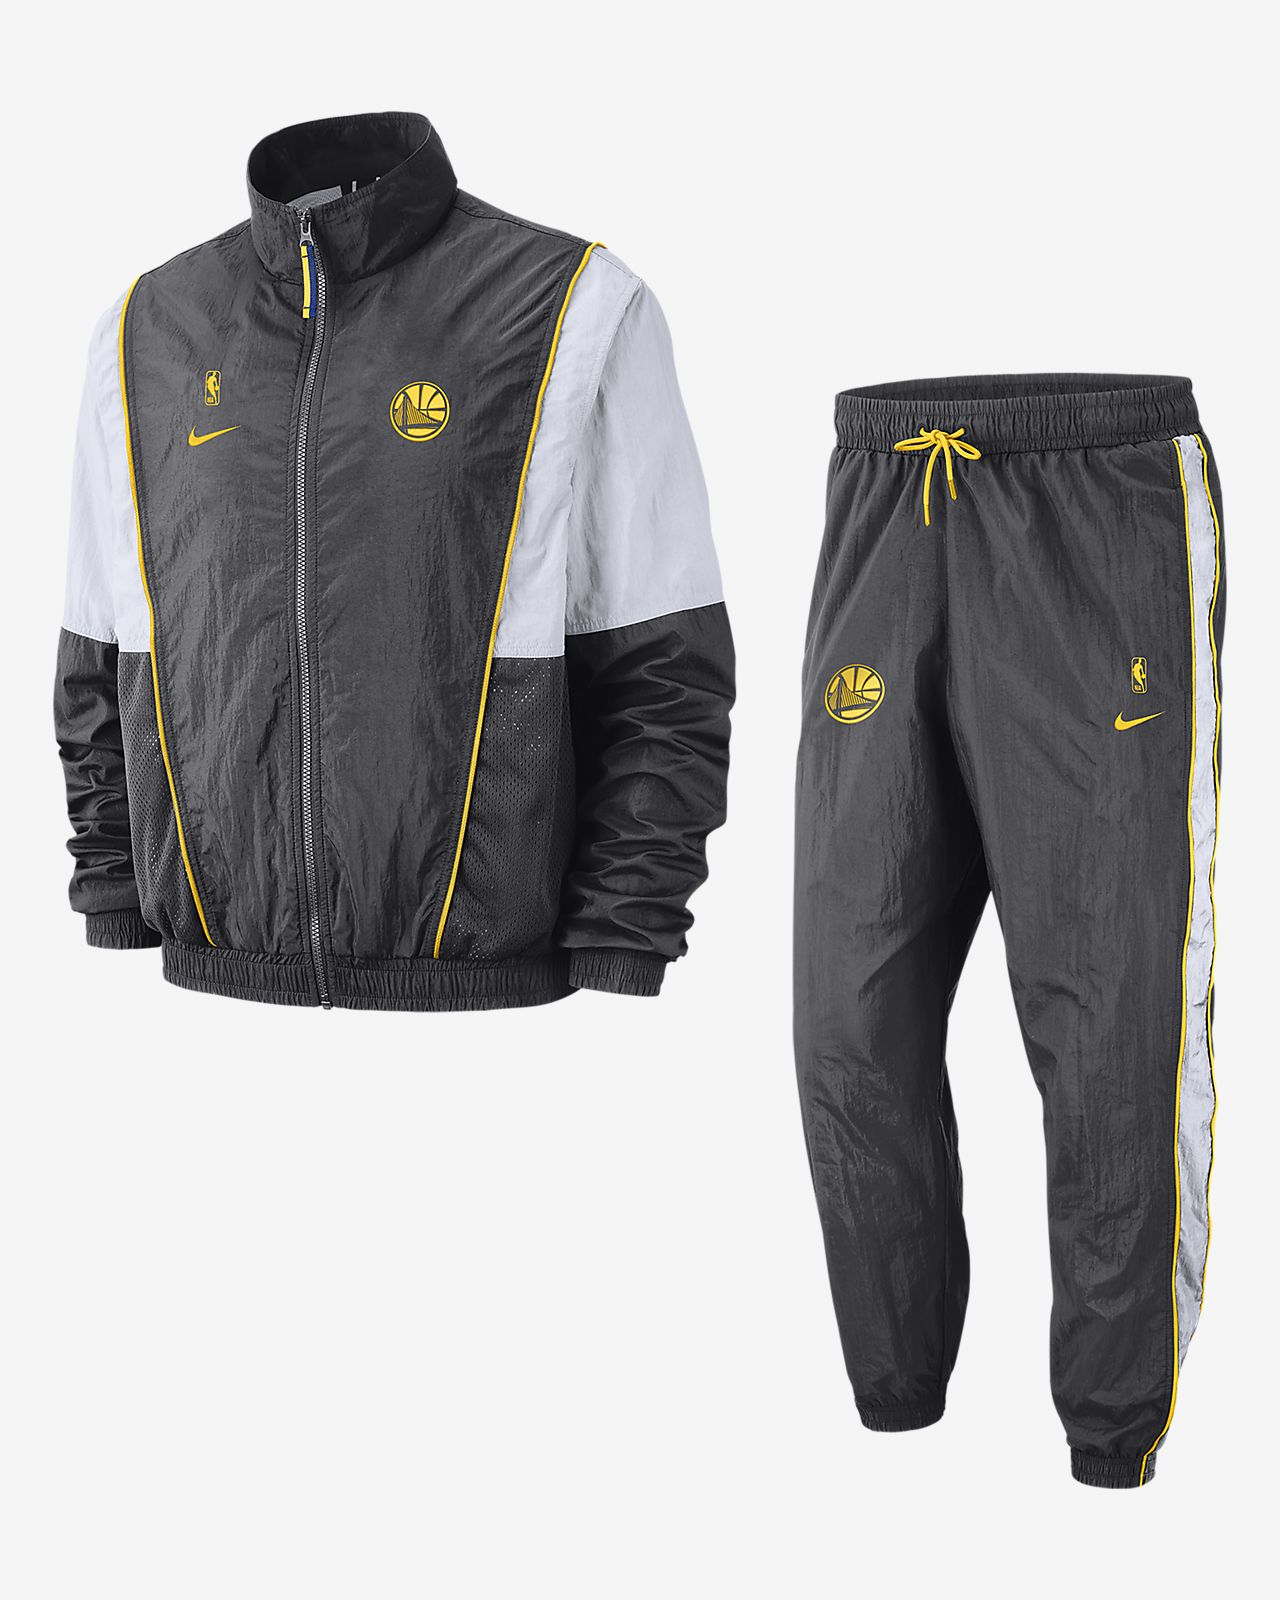 Survêtement NBA Golden State Warriors Nike pour Homme